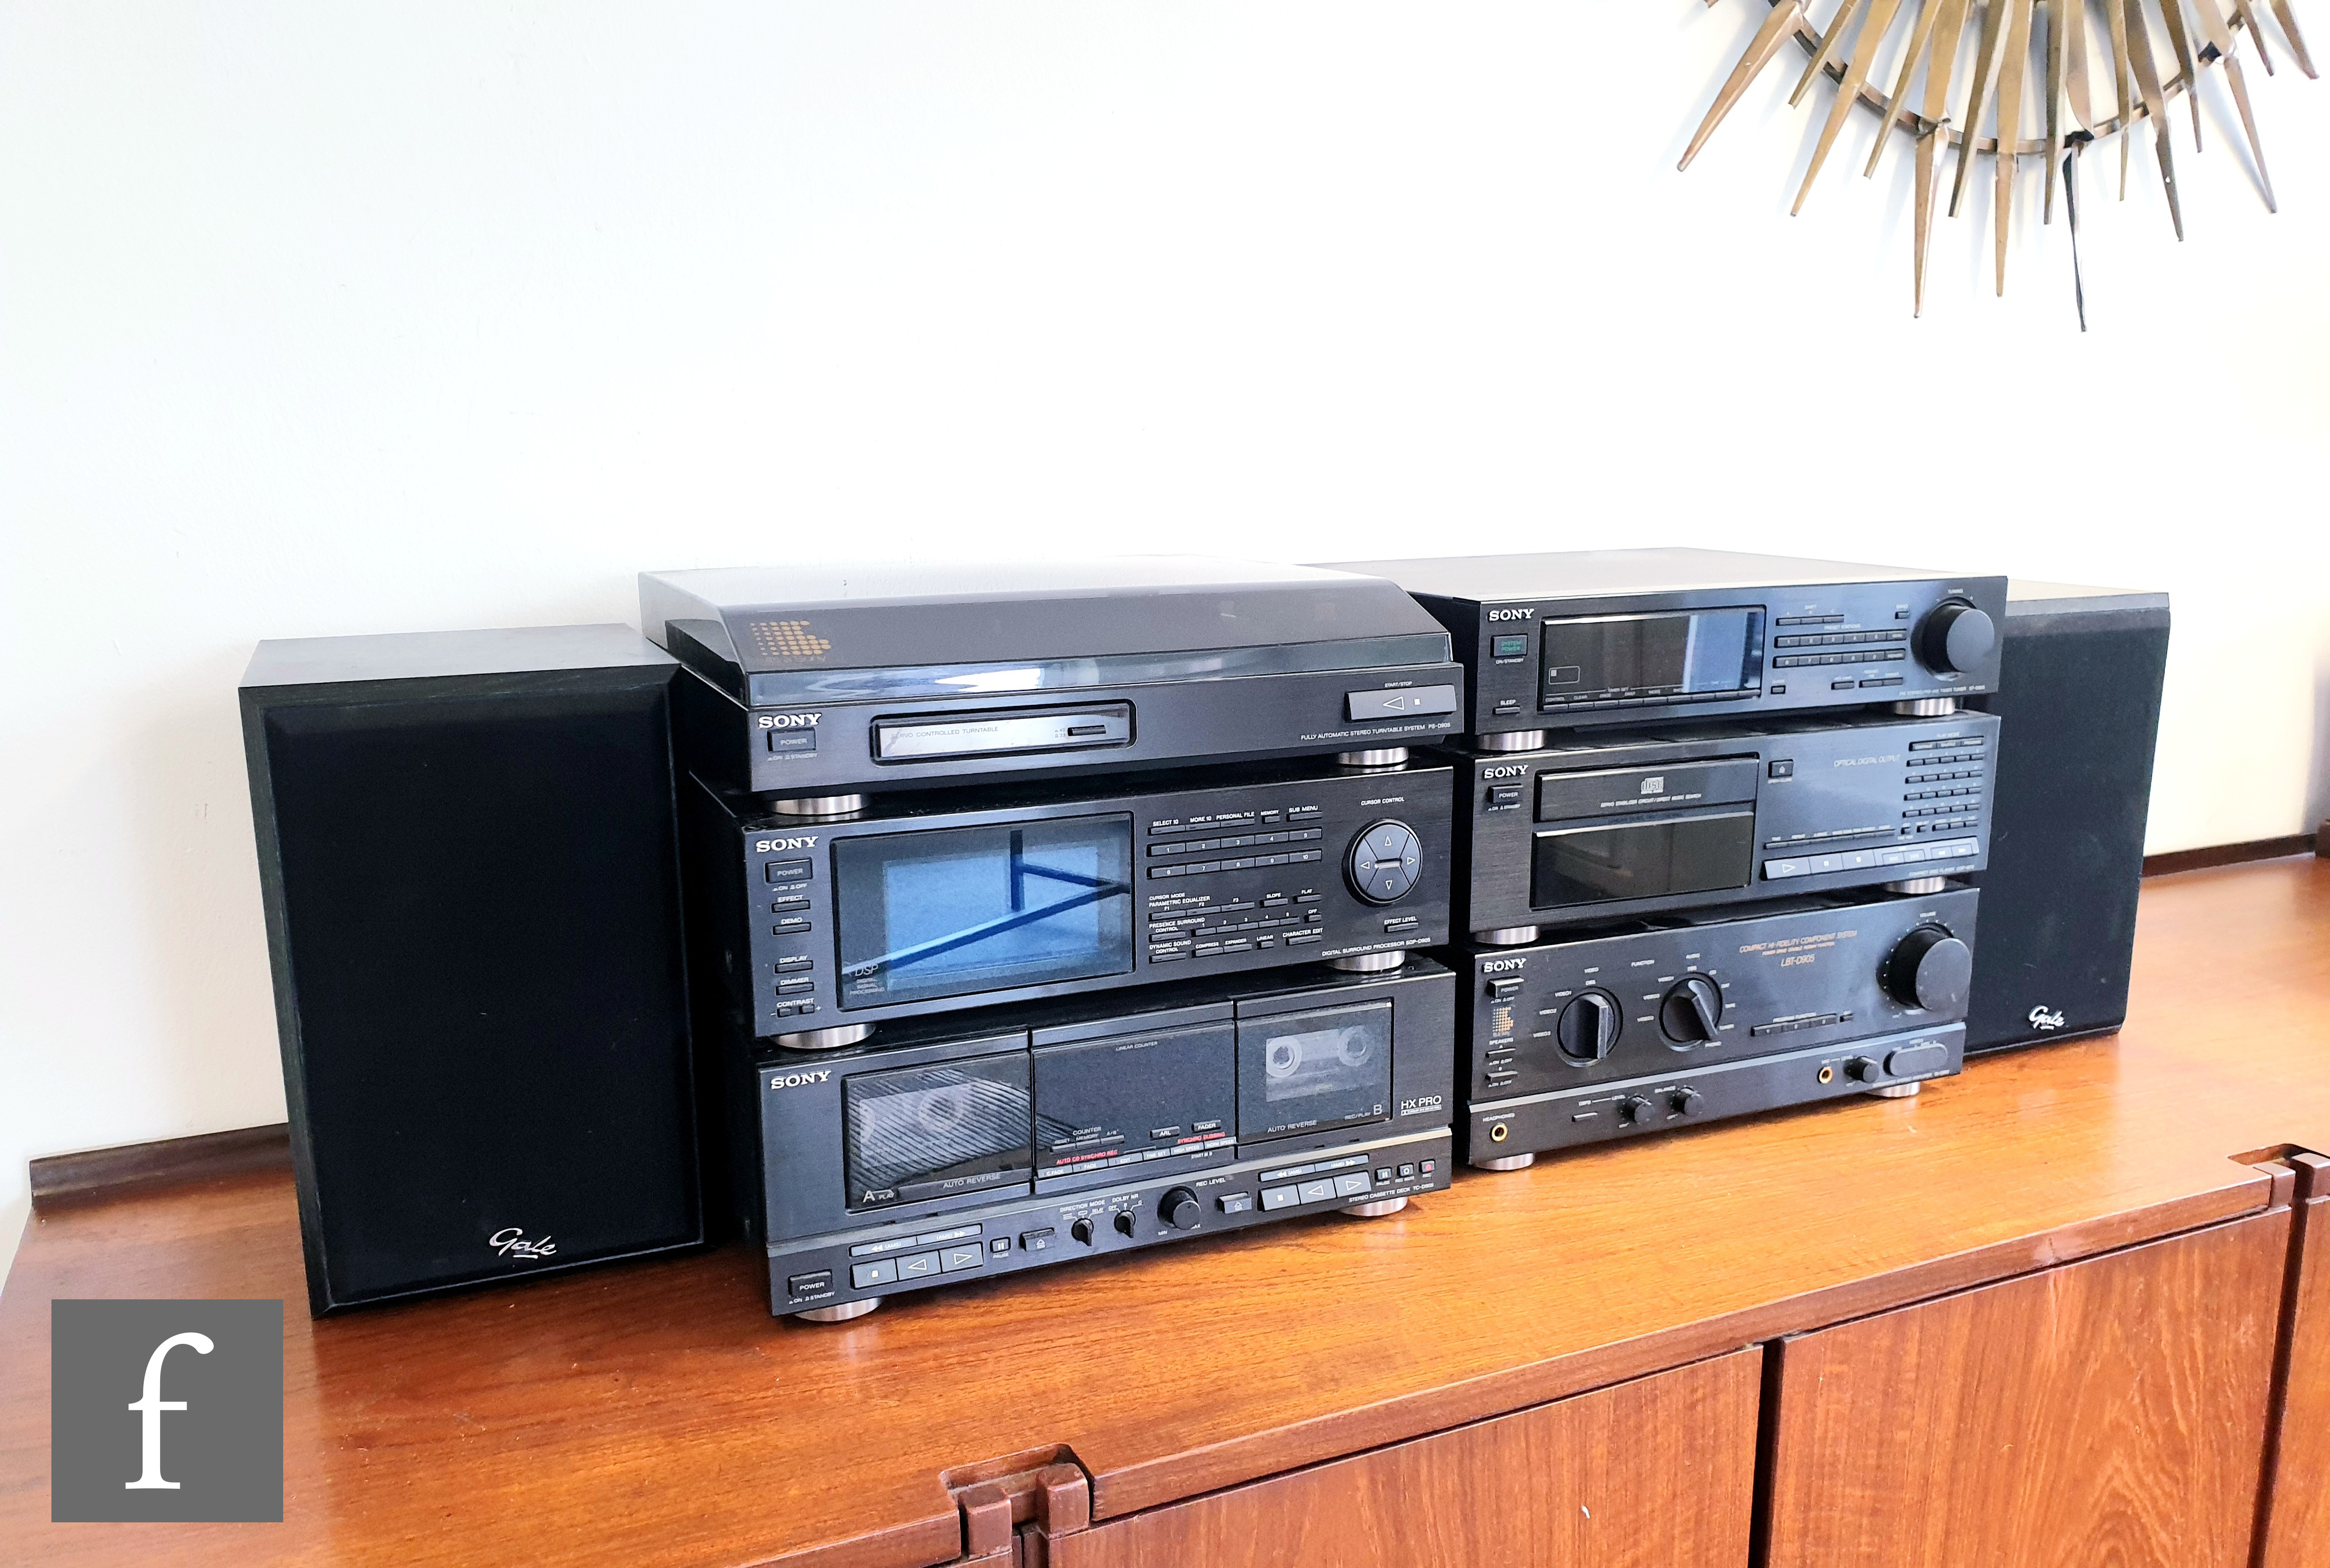 A Sony Hi-Fidelity LBT - D905 component music system, comprising separates, including digital